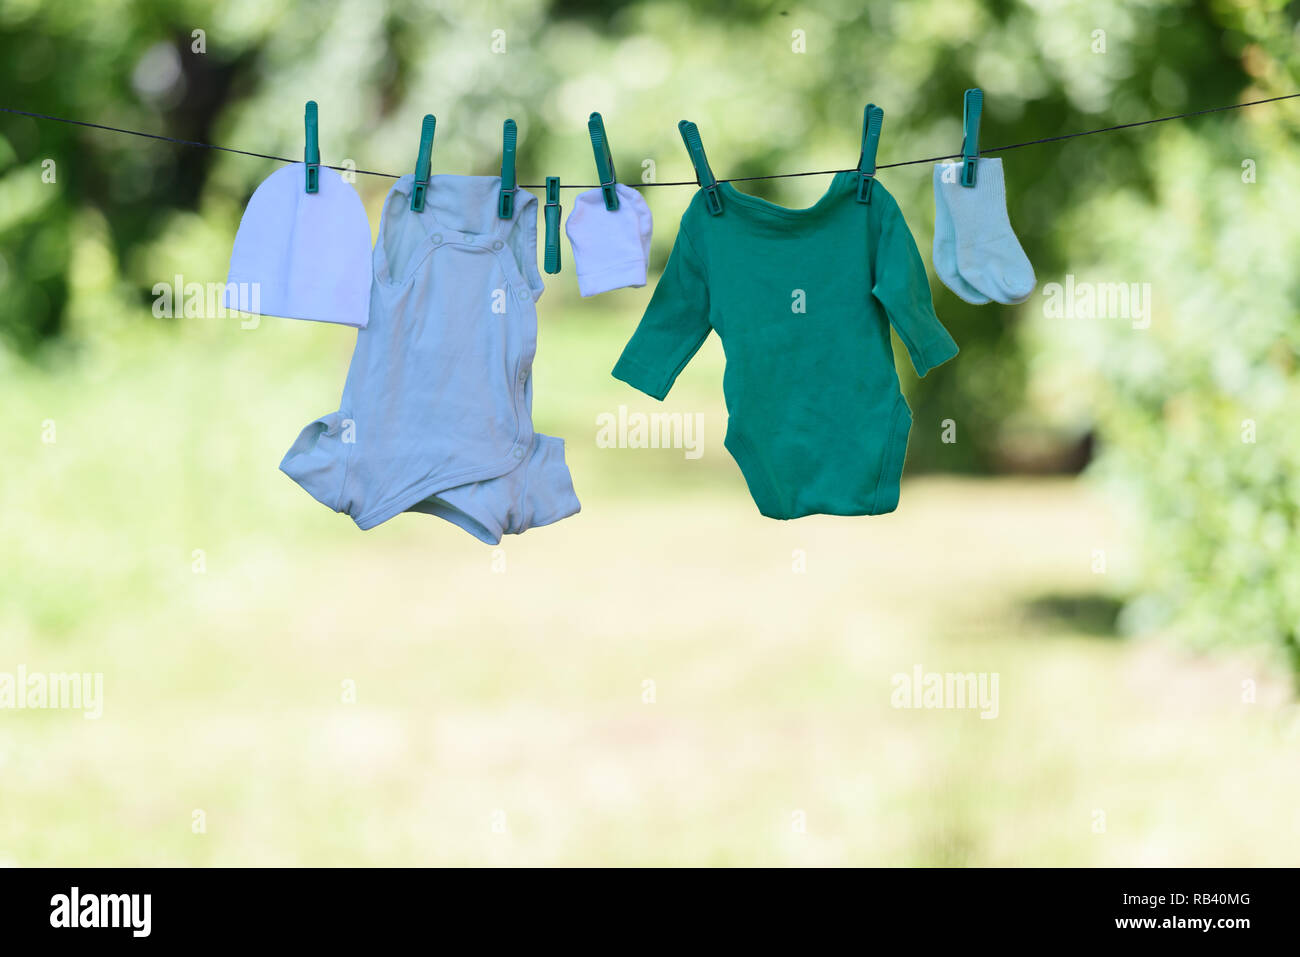 Baby clothes on clothesline drying in garden. Newborn childhood concept - Stock Image